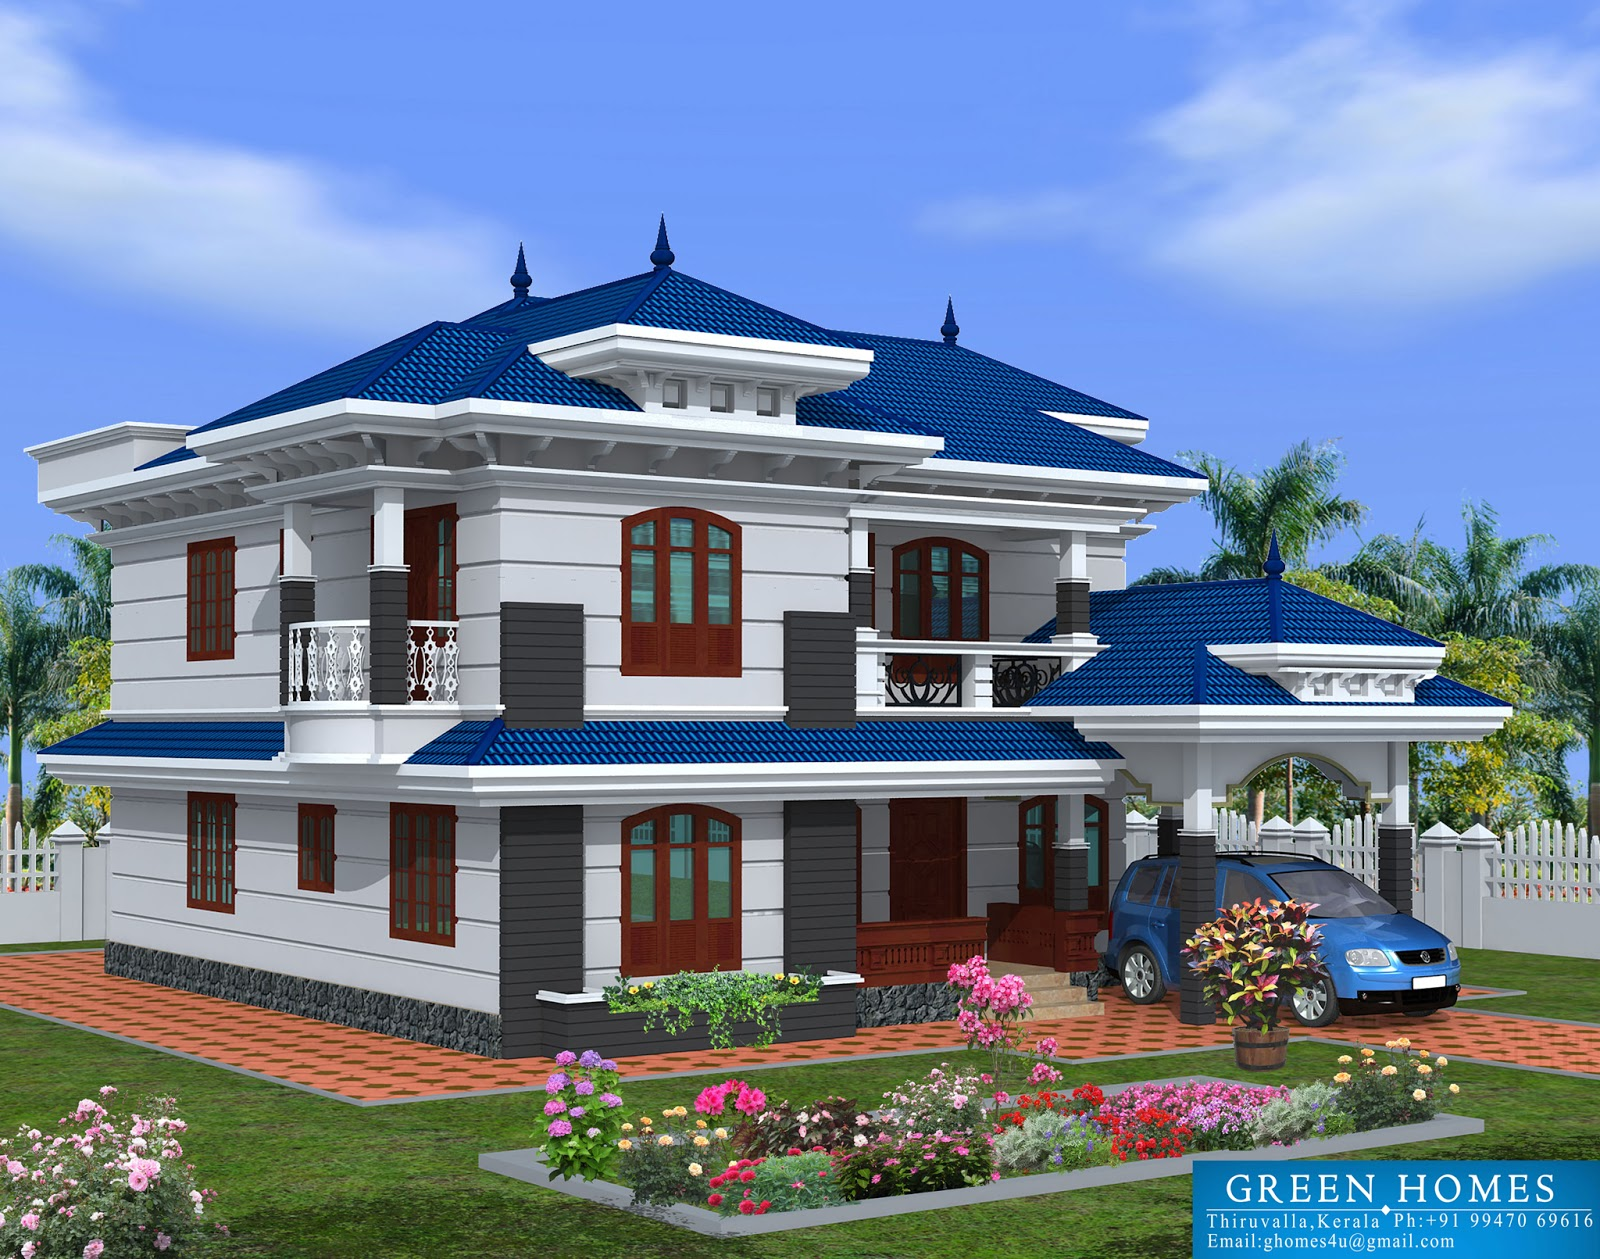 Green homes beautiful kerala home design 2222sq feet